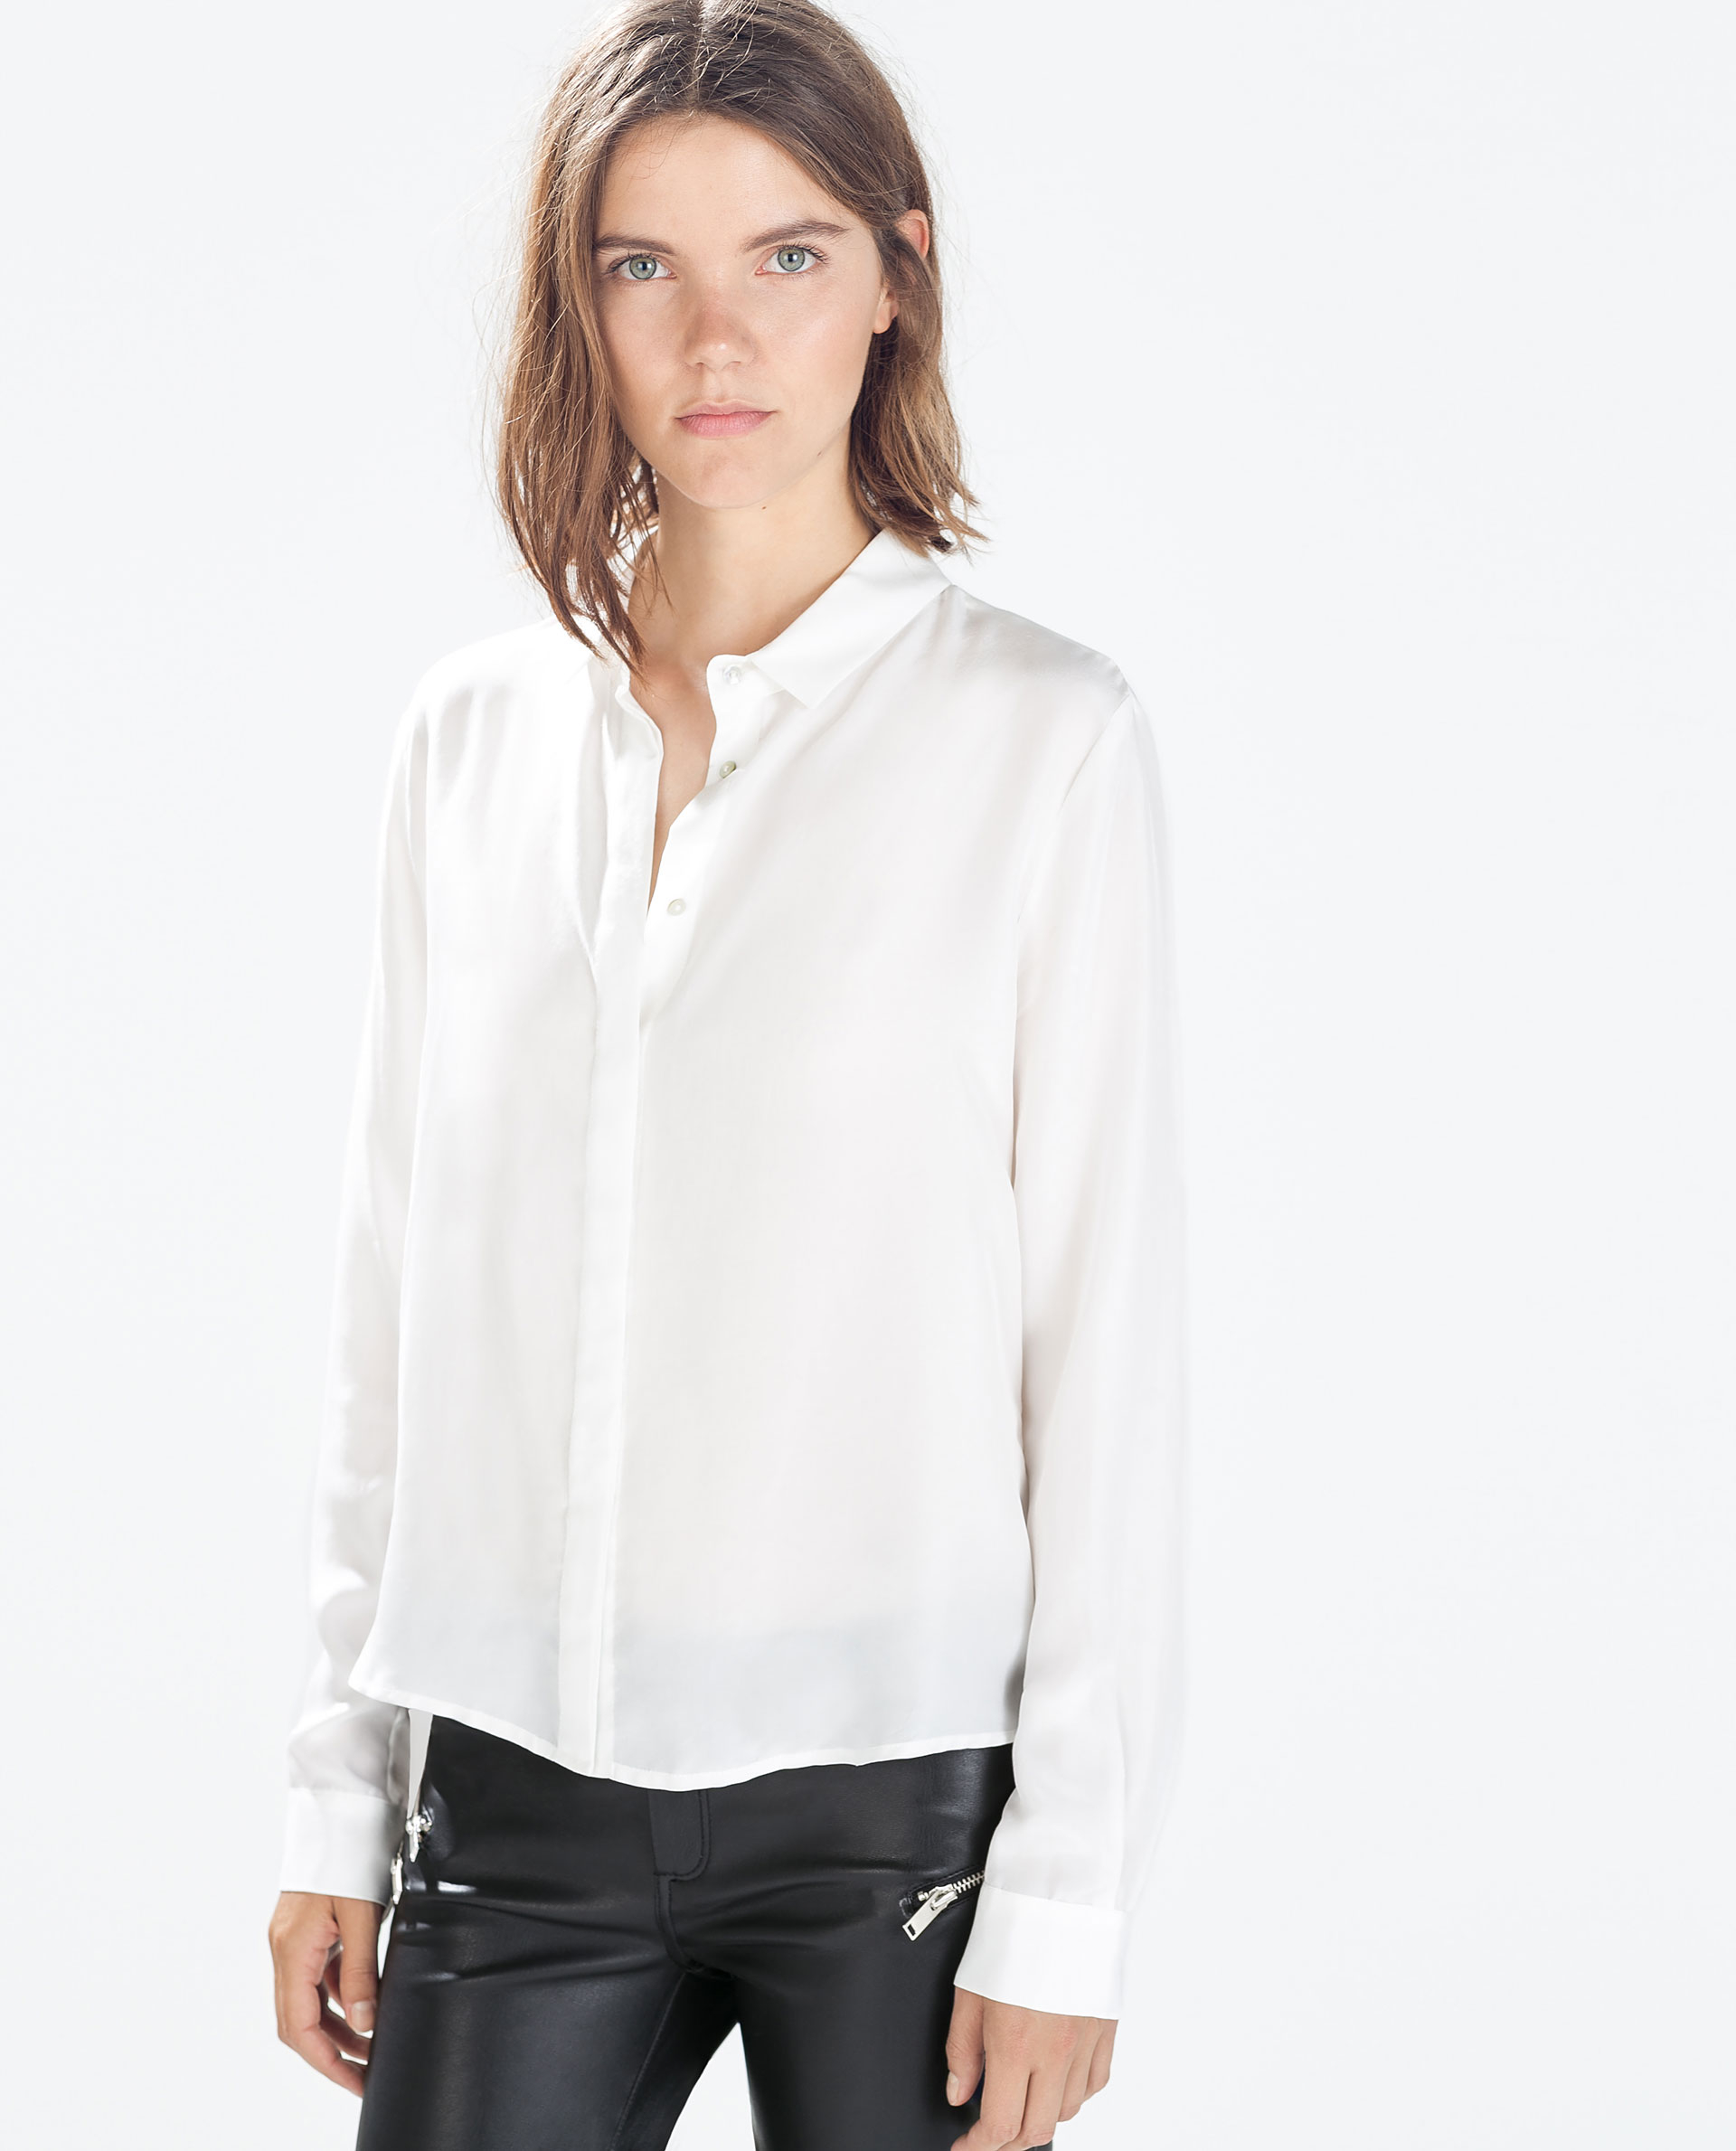 Find great deals on eBay for white blouse. Shop with confidence. Skip to main content. eBay: Lily White Tops & Blouses for Women. Pirate Costumes White Blouses for Women. White Stag Blouses for Women. Feedback. Leave feedback about your eBay search experience. Additional site navigation.